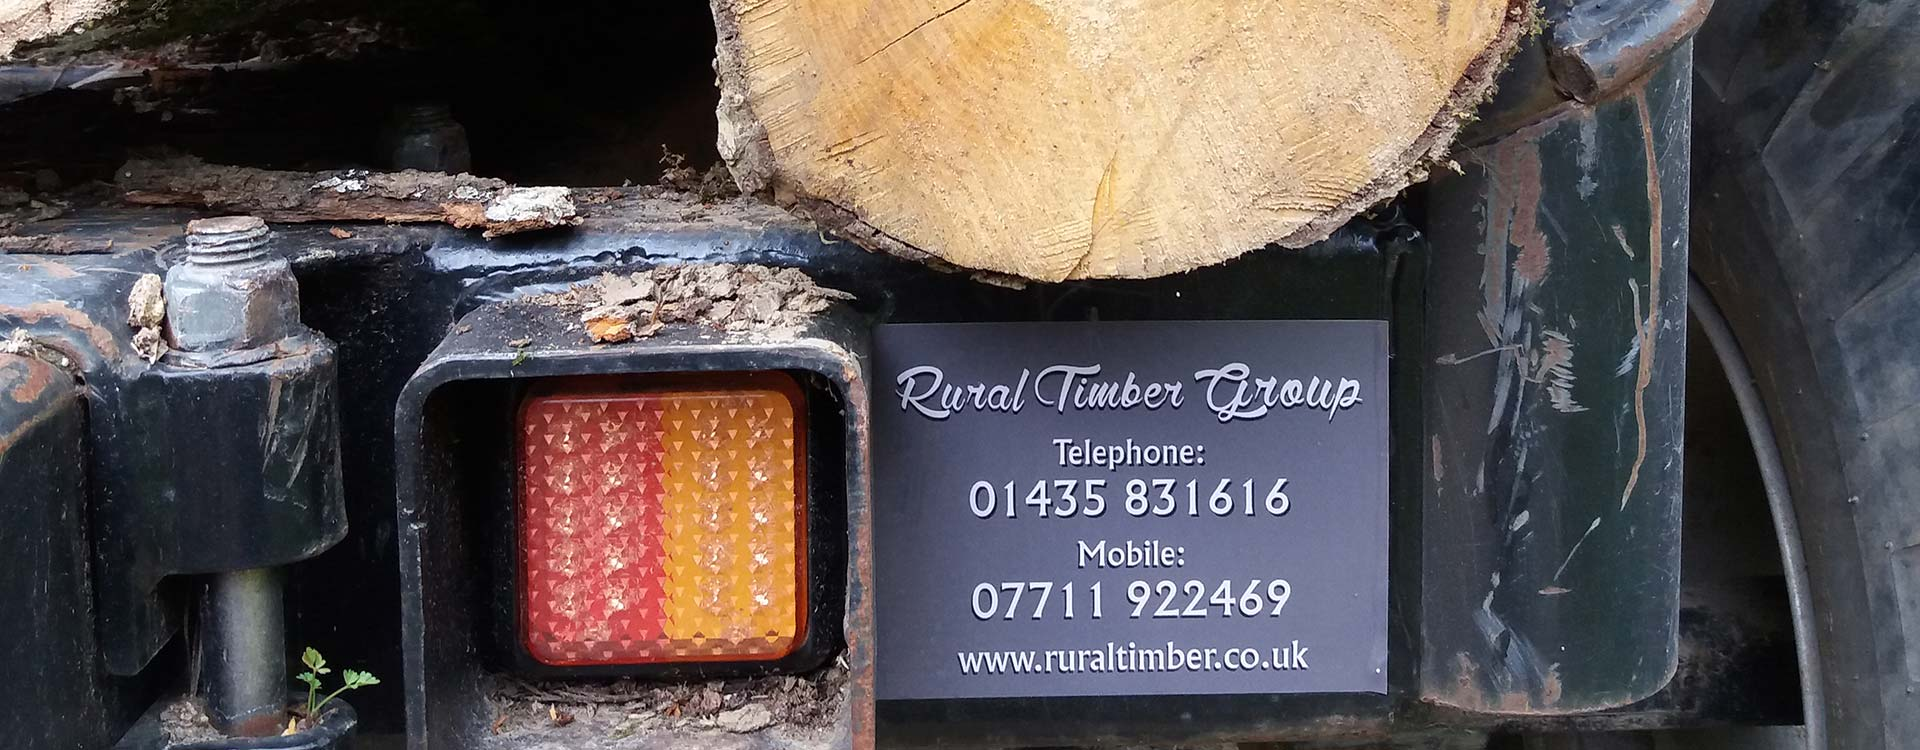 Rural-Timber-Group-East-Sussex